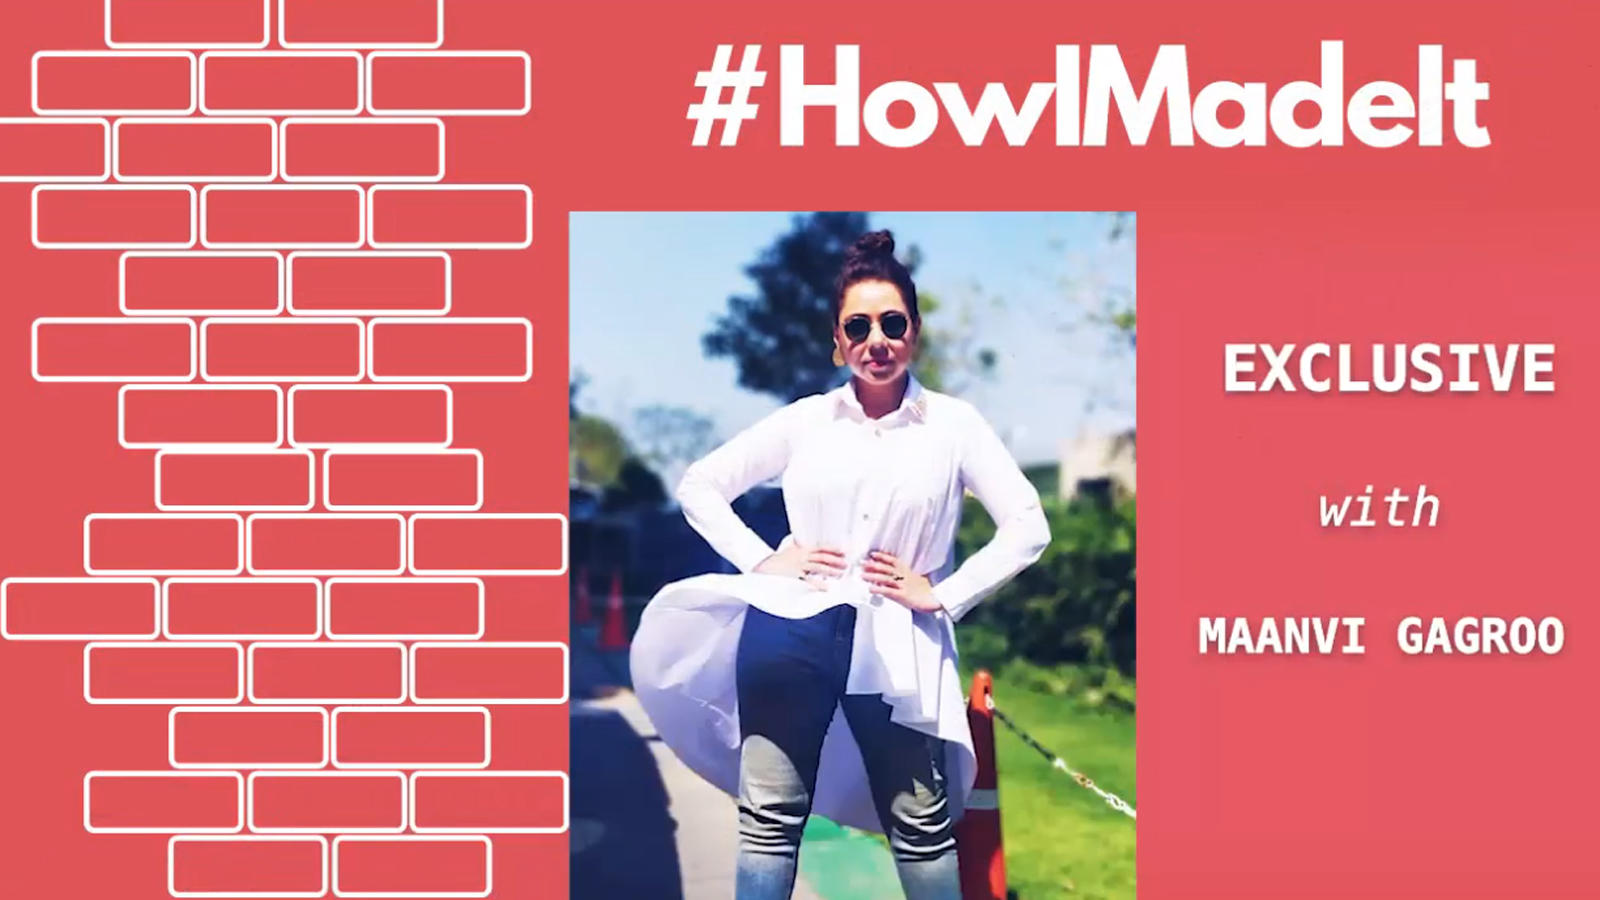 howimadeit-maanvi-gagroo-i-dont-care-if-some-people-have-a-problem-with-my-weight